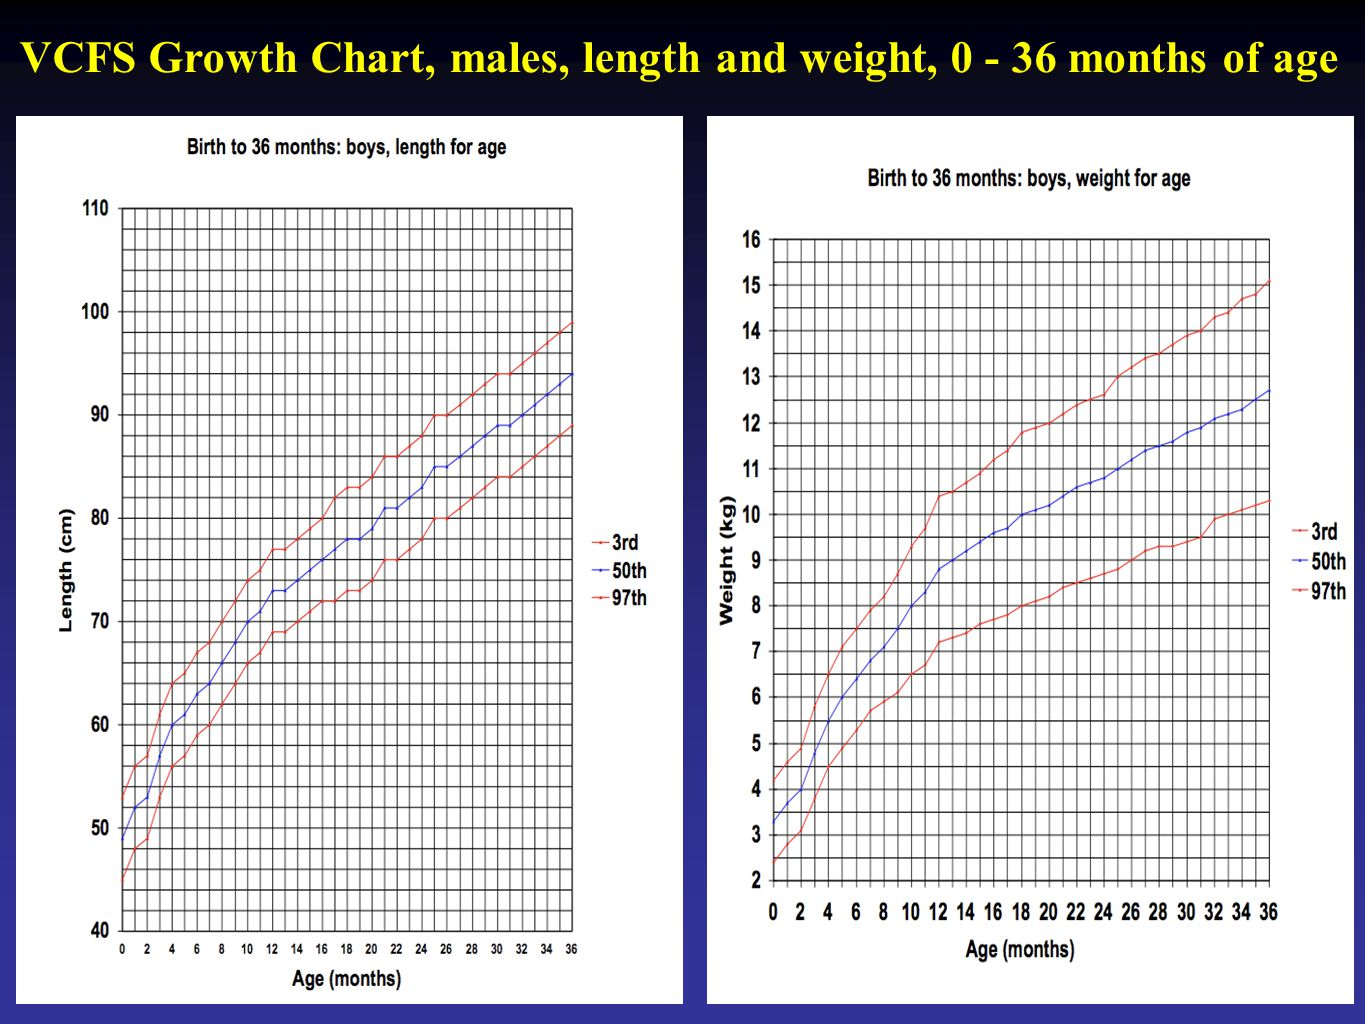 VCFS Growth Chart, males, length and weight, 0 - 36 months of age